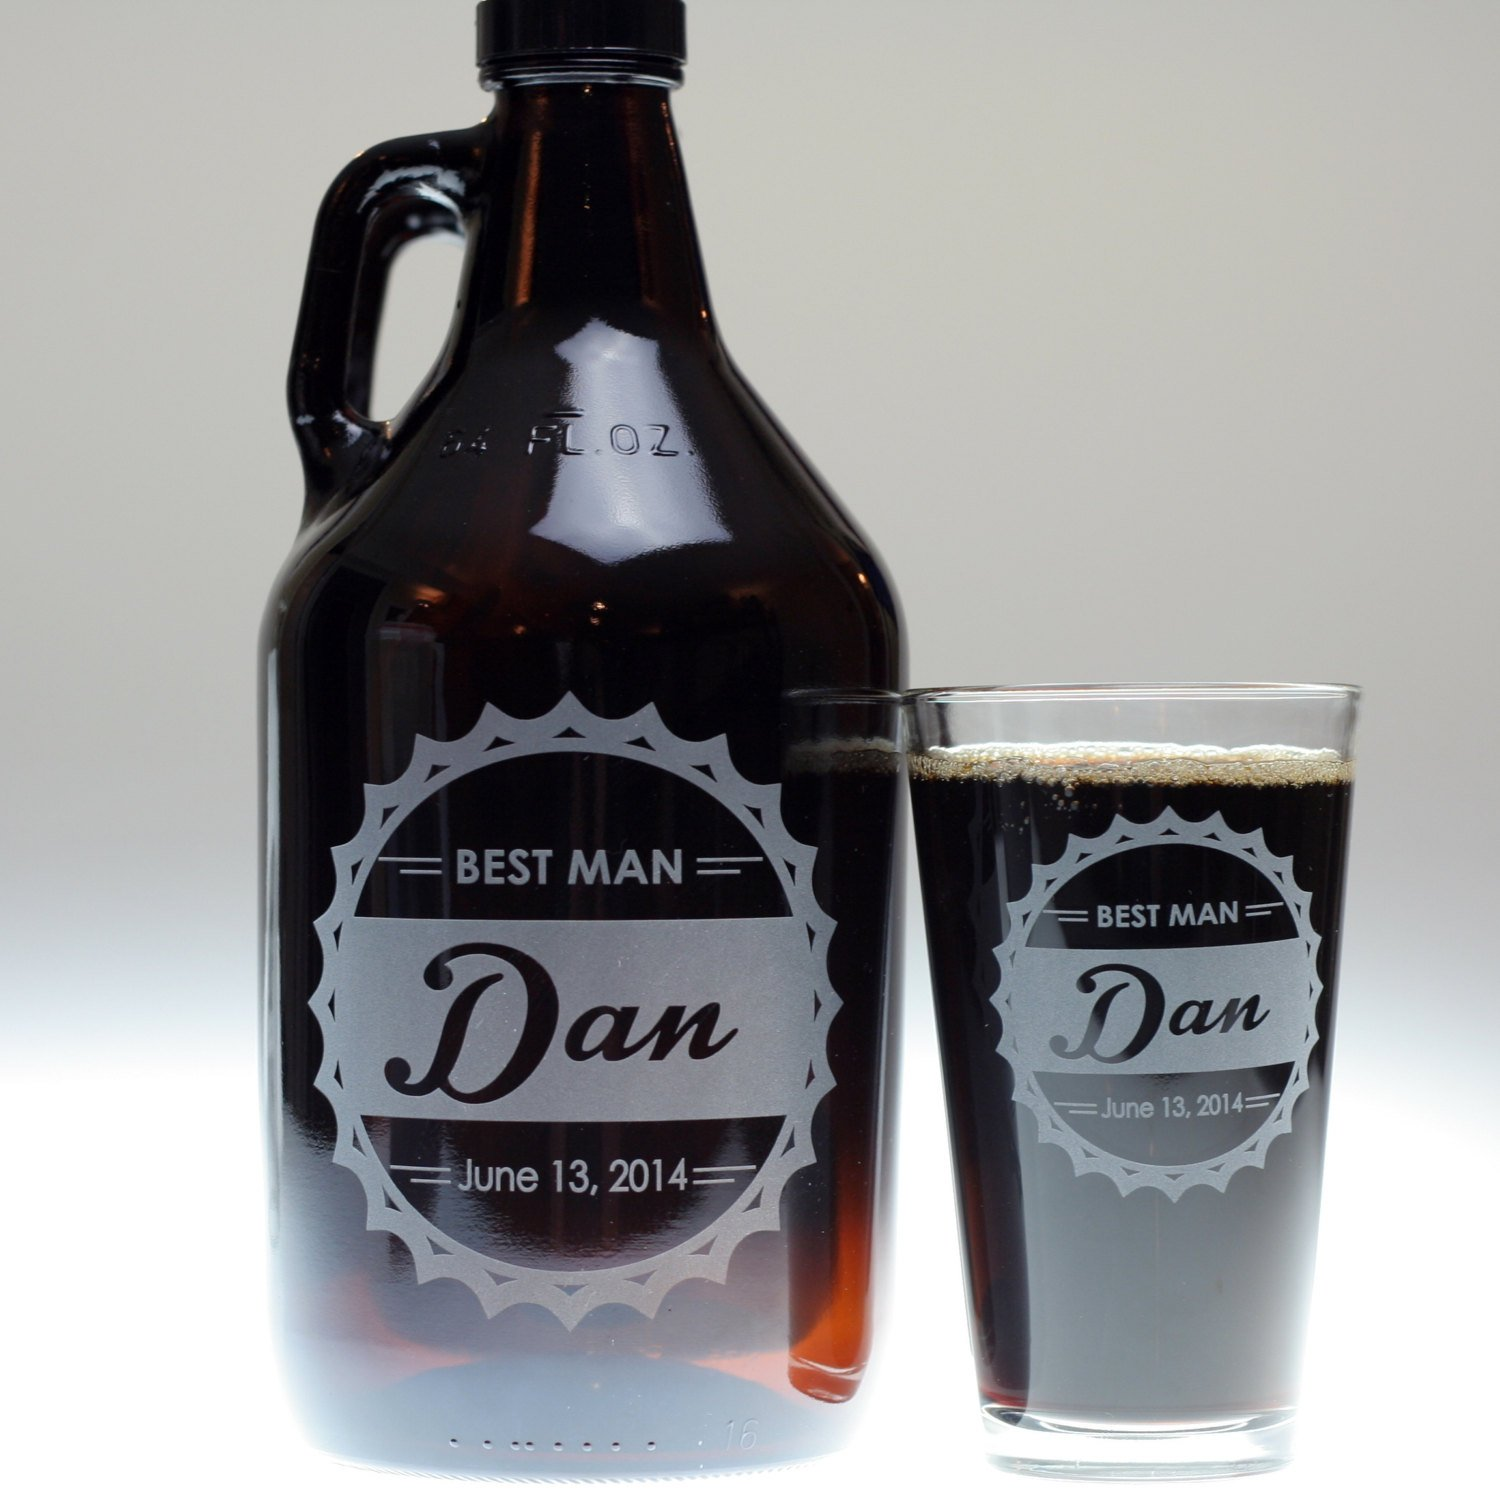 Personalized Engraved Bottle Cap Theme Groomsman Beer Growler Glass Set | Custom Groomsmen Gift